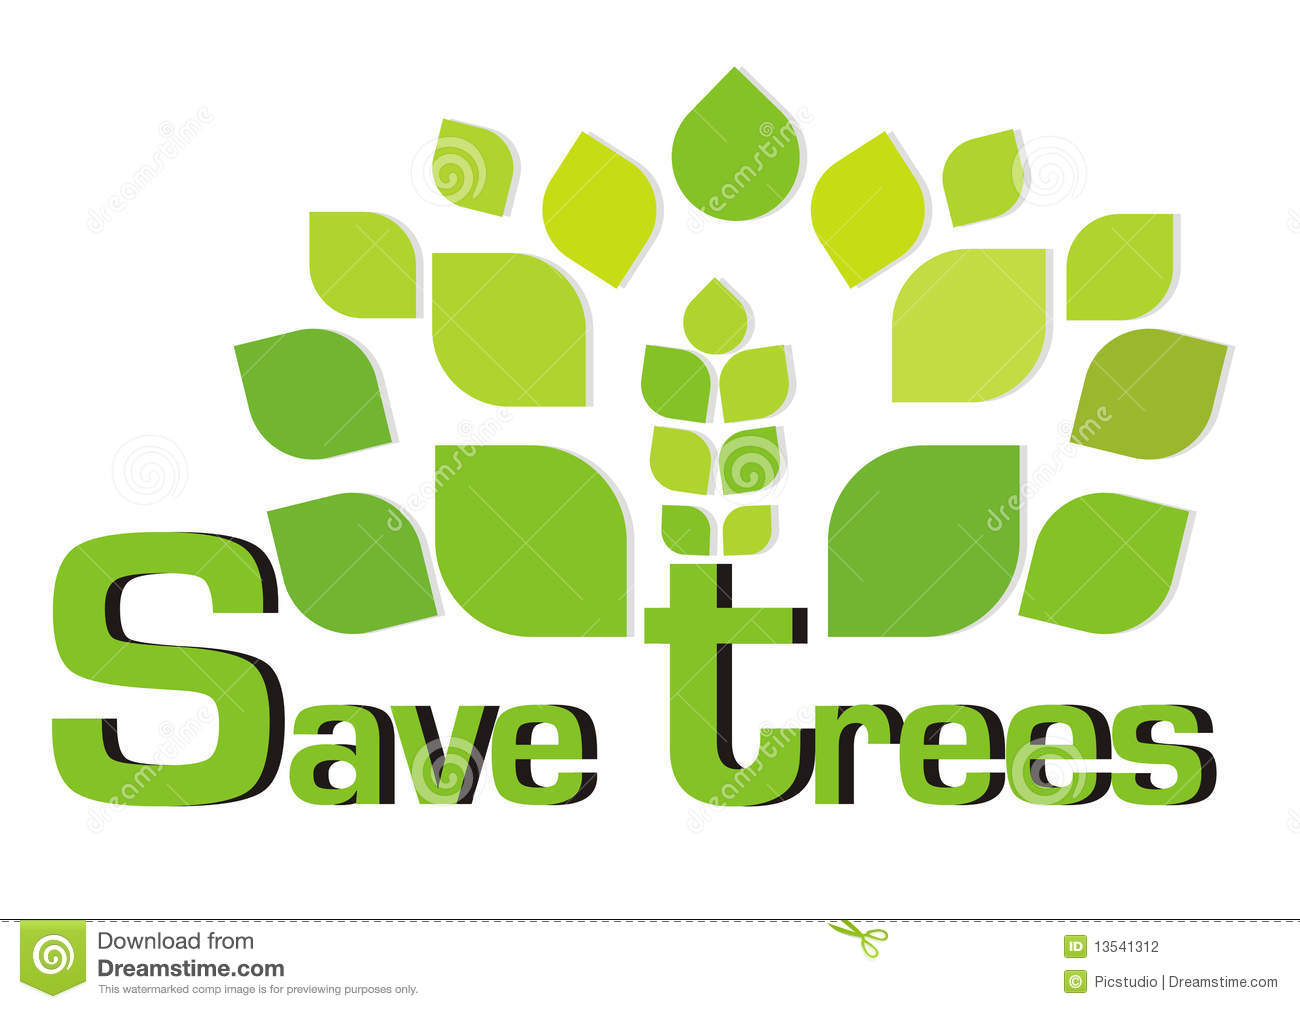 Save trees clipart clipart download Save trees clipart - ClipartFest clipart download